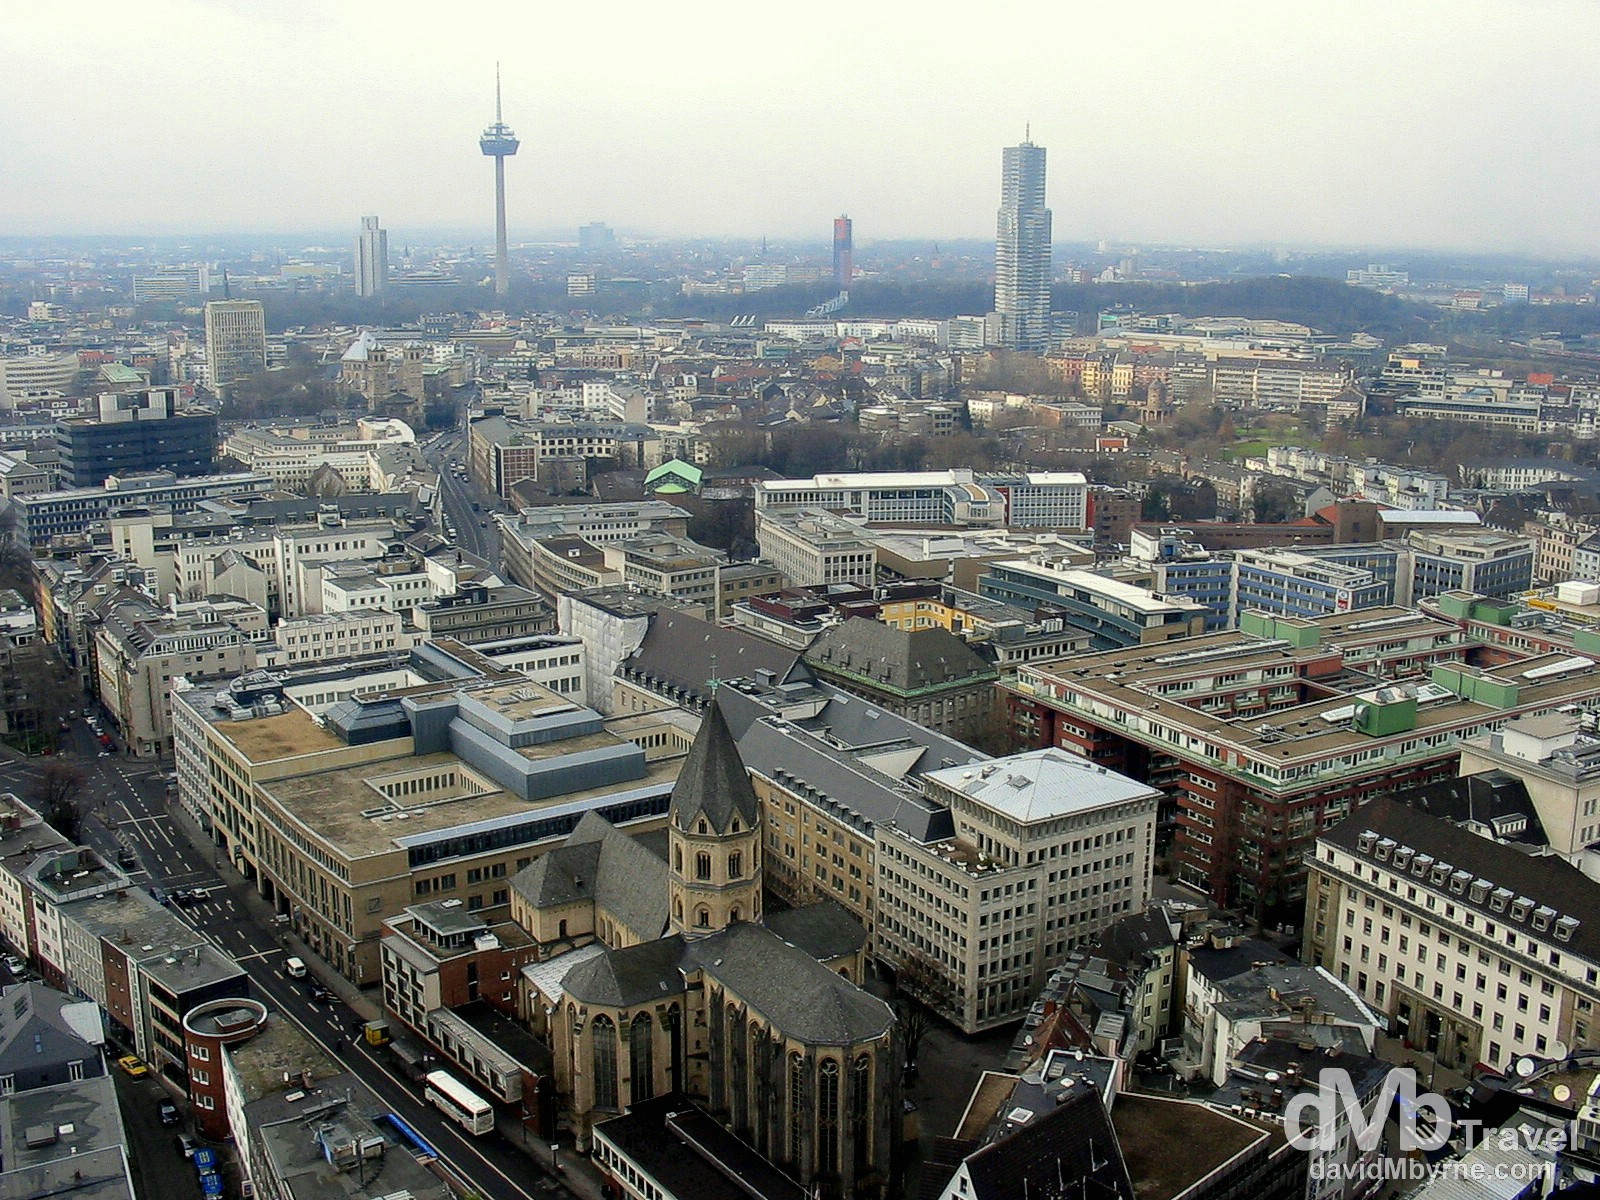 Cologne as seen from the south tower of Cologne Cathedral, Cologne, Germany. February 16th 2005.